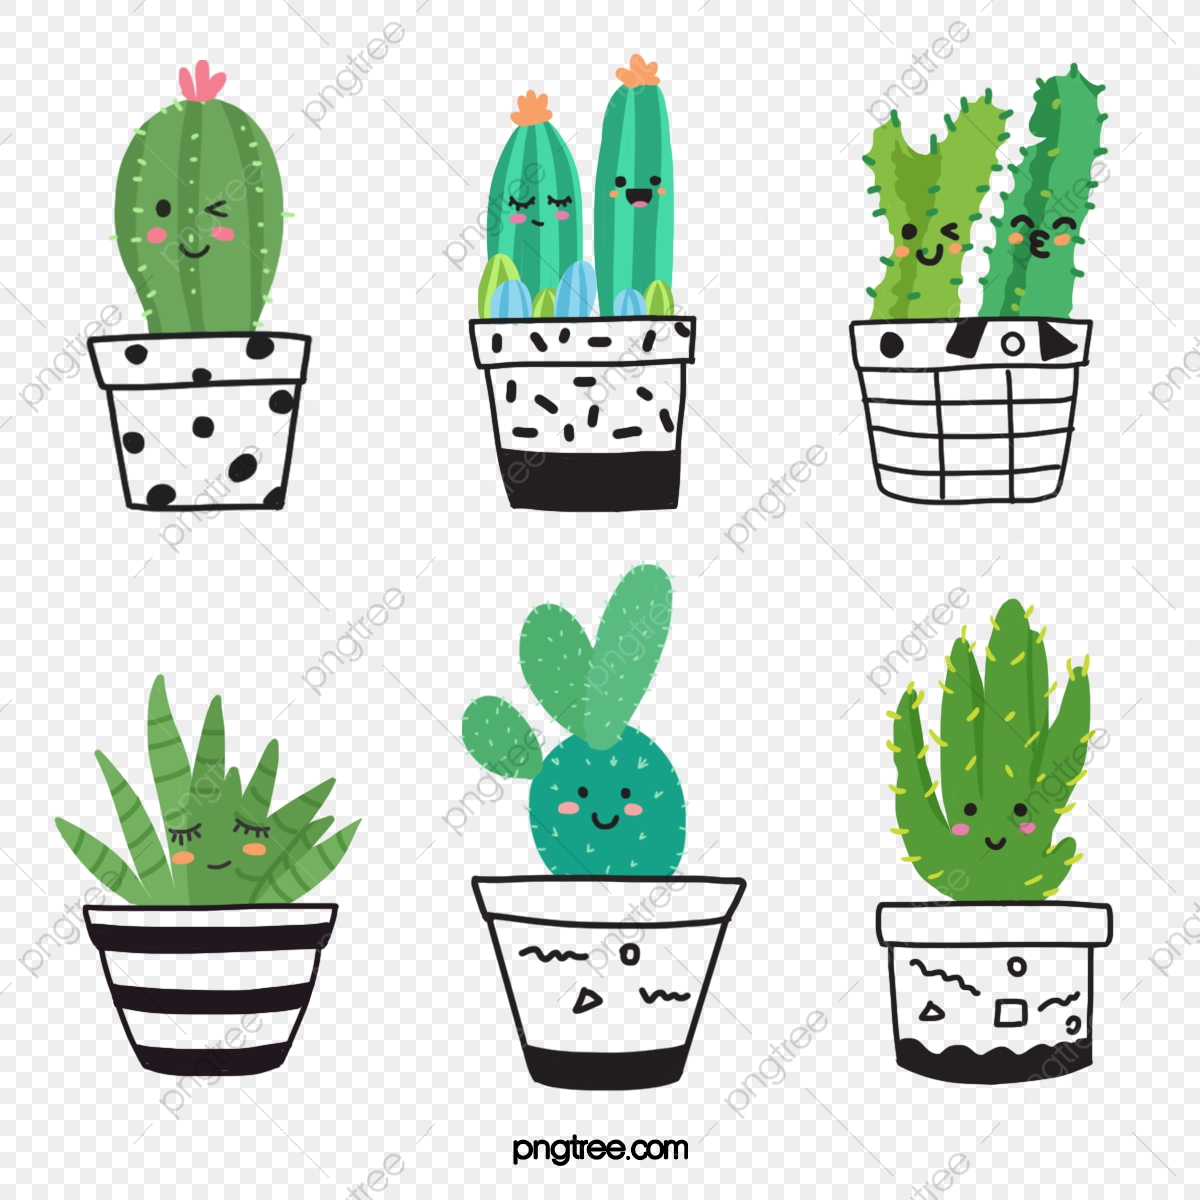 Green Cartoon Hand Drawn Style Cute Indoor Cactus Plant Element Prickly Pear Potted Plant Succulents Png Transparent Clipart Image And Psd File For Free Download